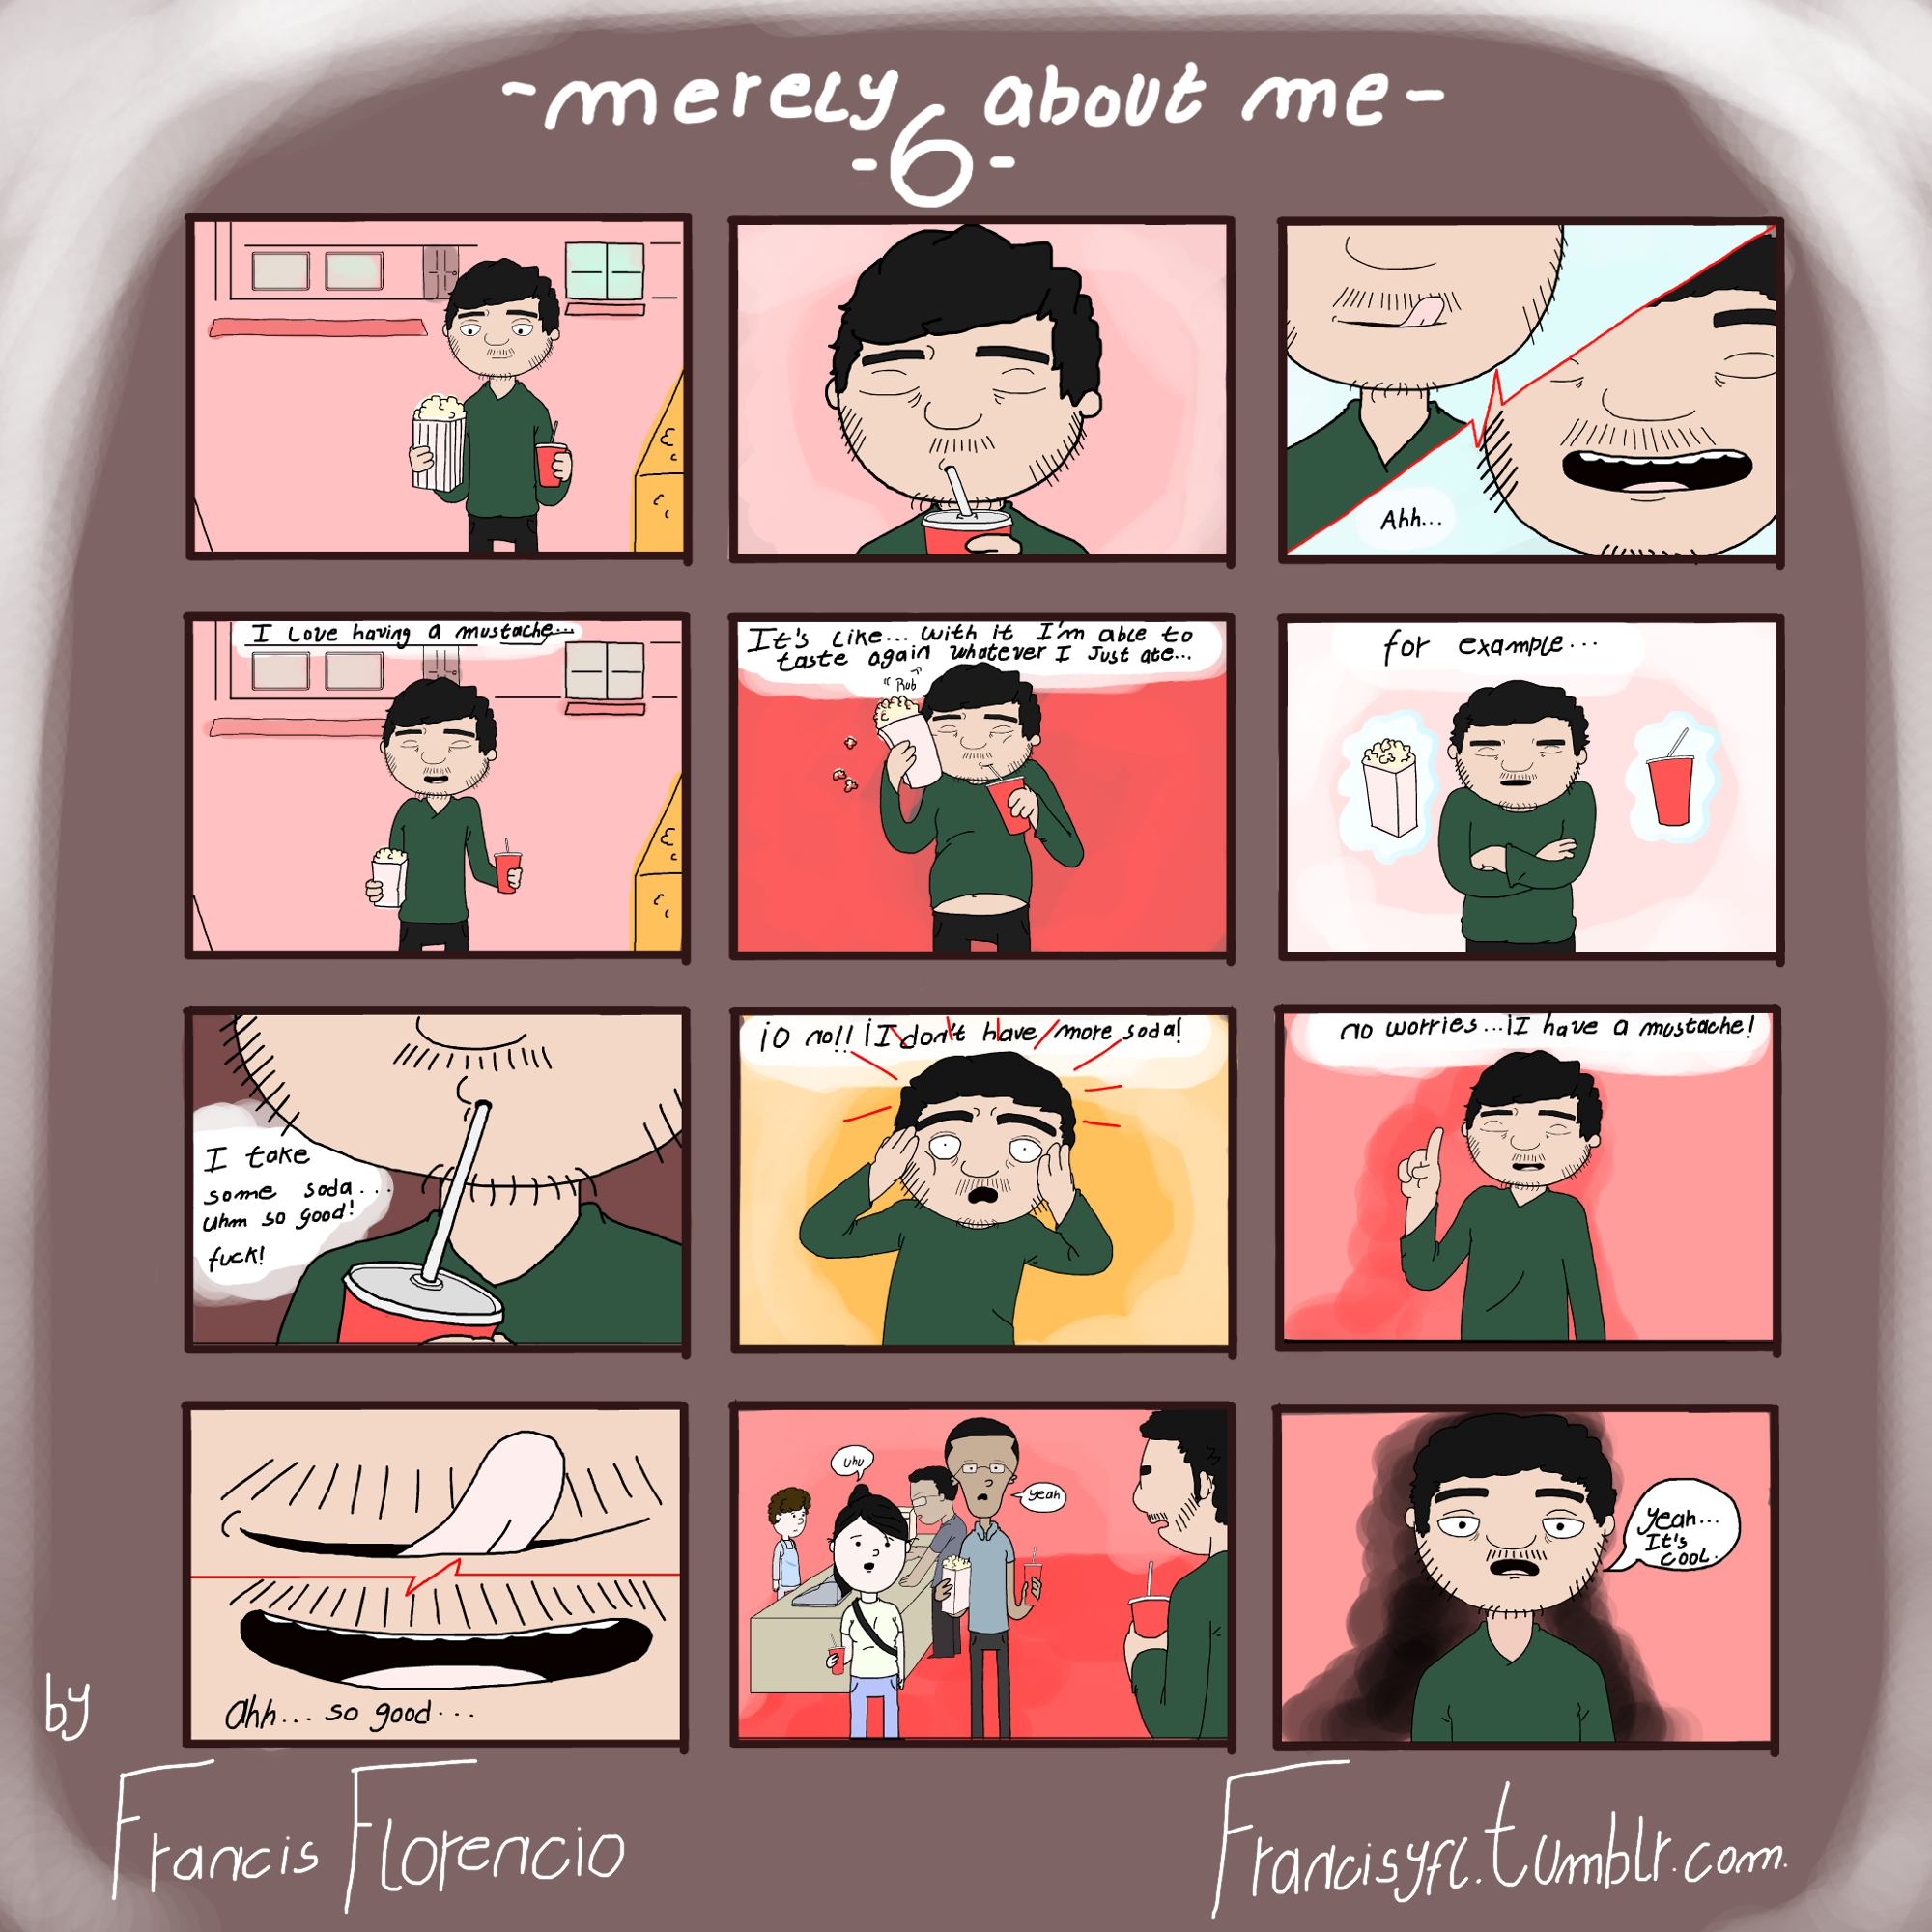 [Comic] Merely about me 6